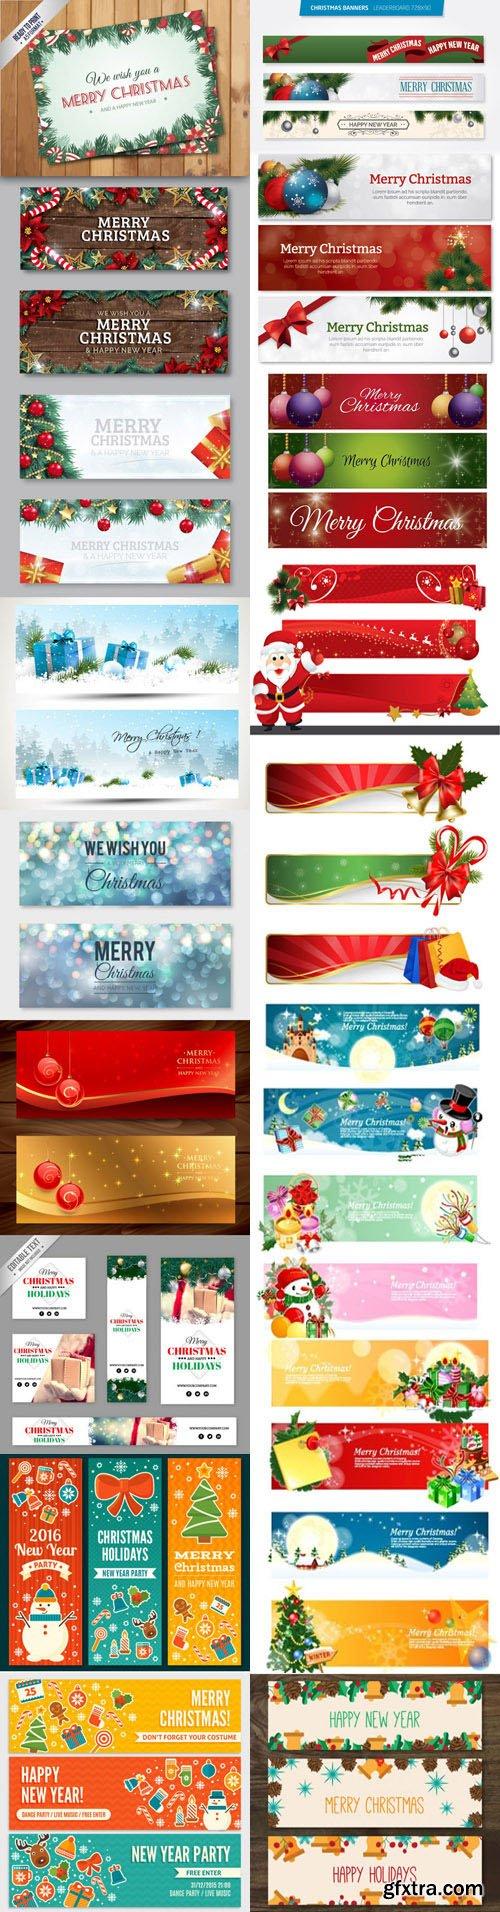 Christmas Banners Vector Collection 1 [Ai/EPS]